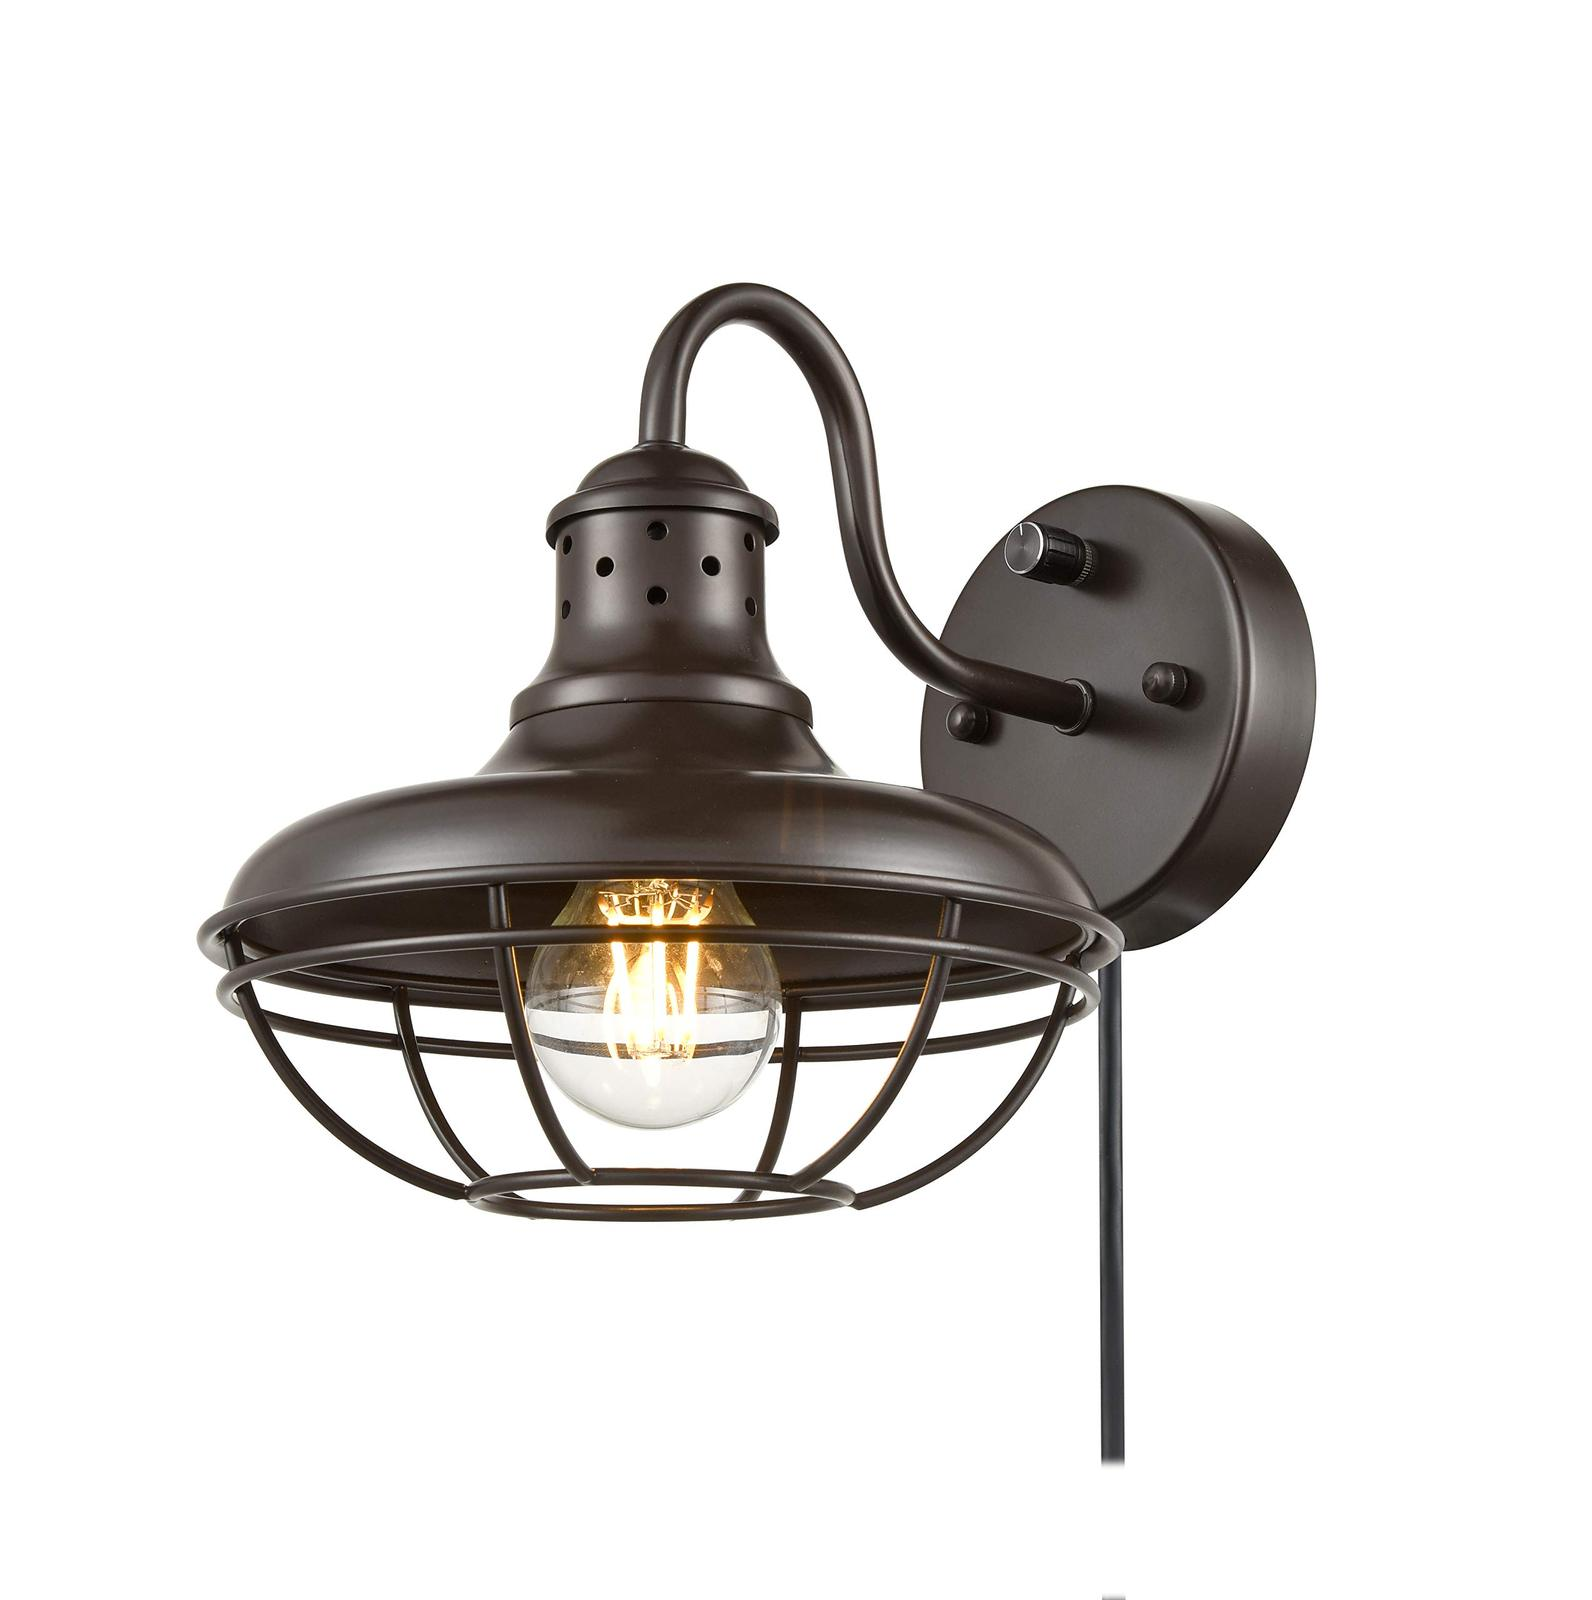 Dazhuan Industrial Plug-in Wall Sconce Light with On/Off ... on Plugin Wall Sconce Lights id=65663